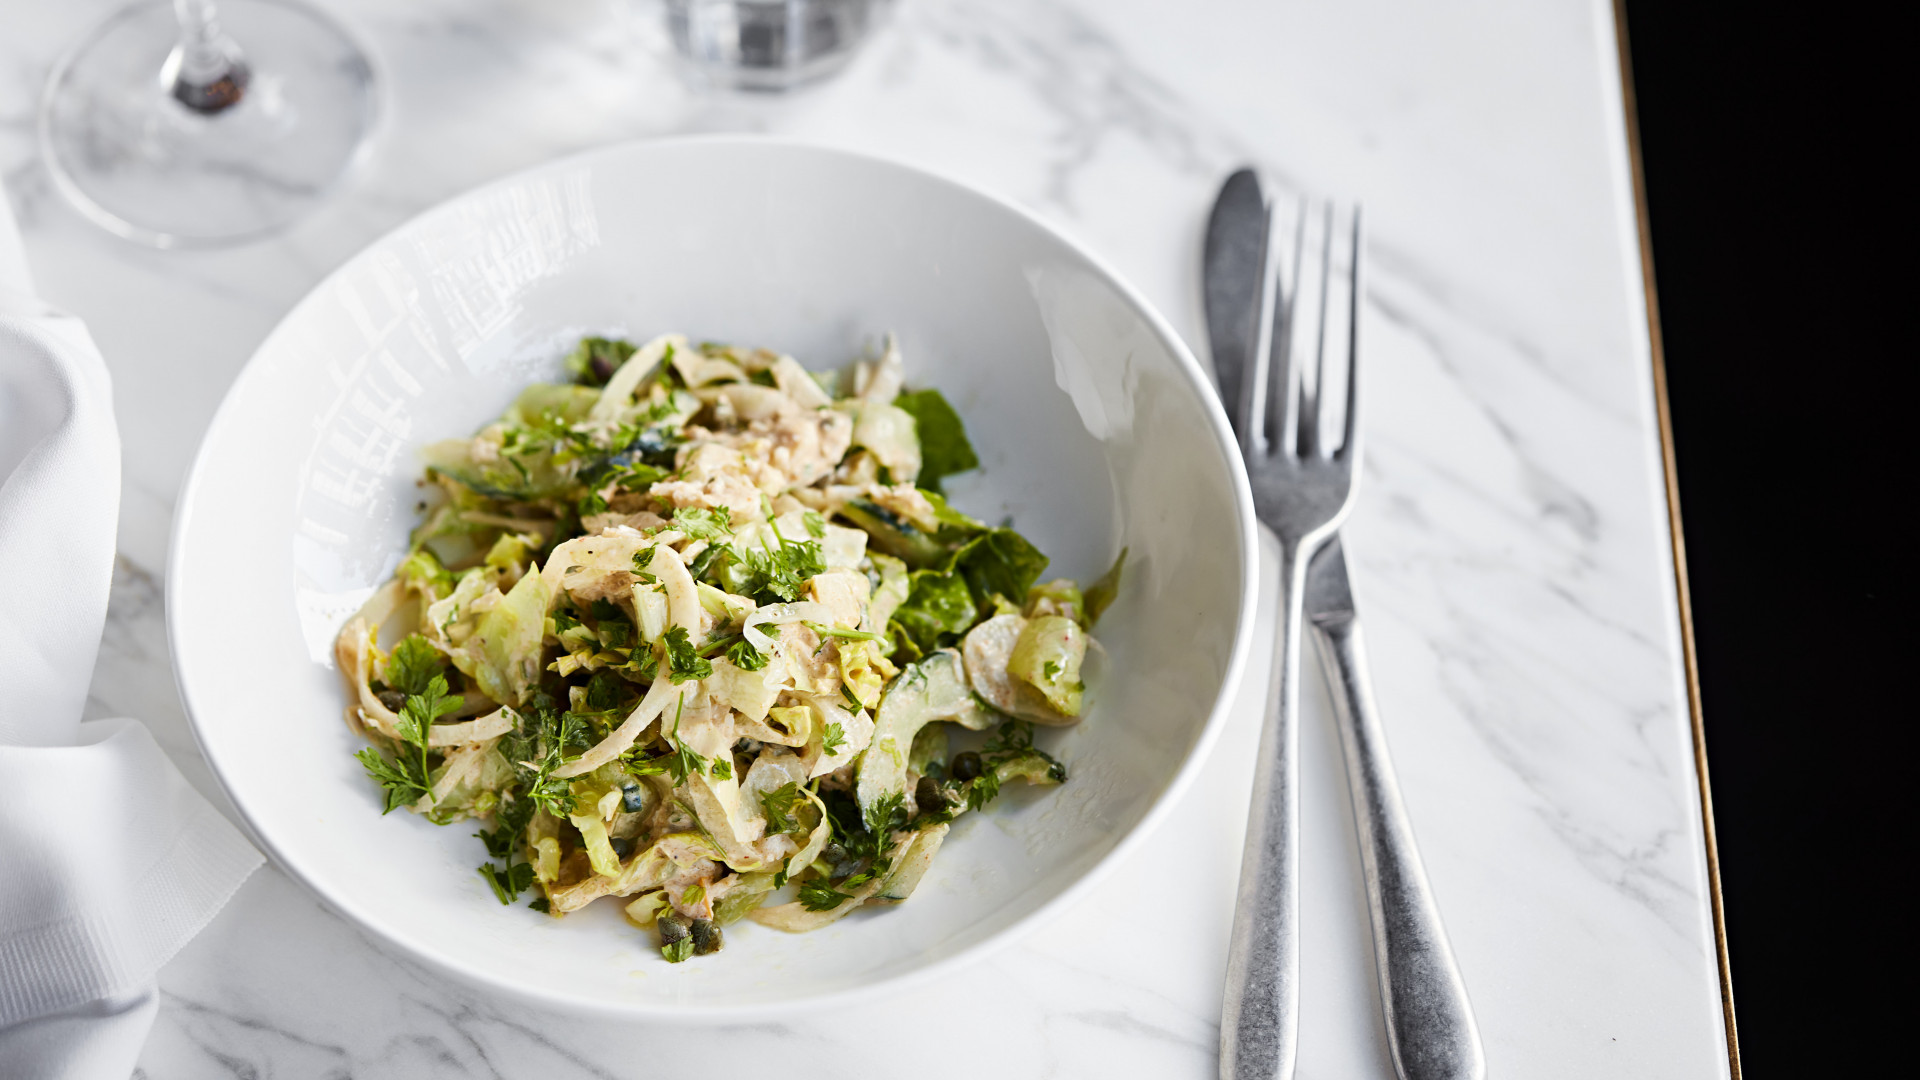 Rondo, Holborn | crab and sauerfennel salad